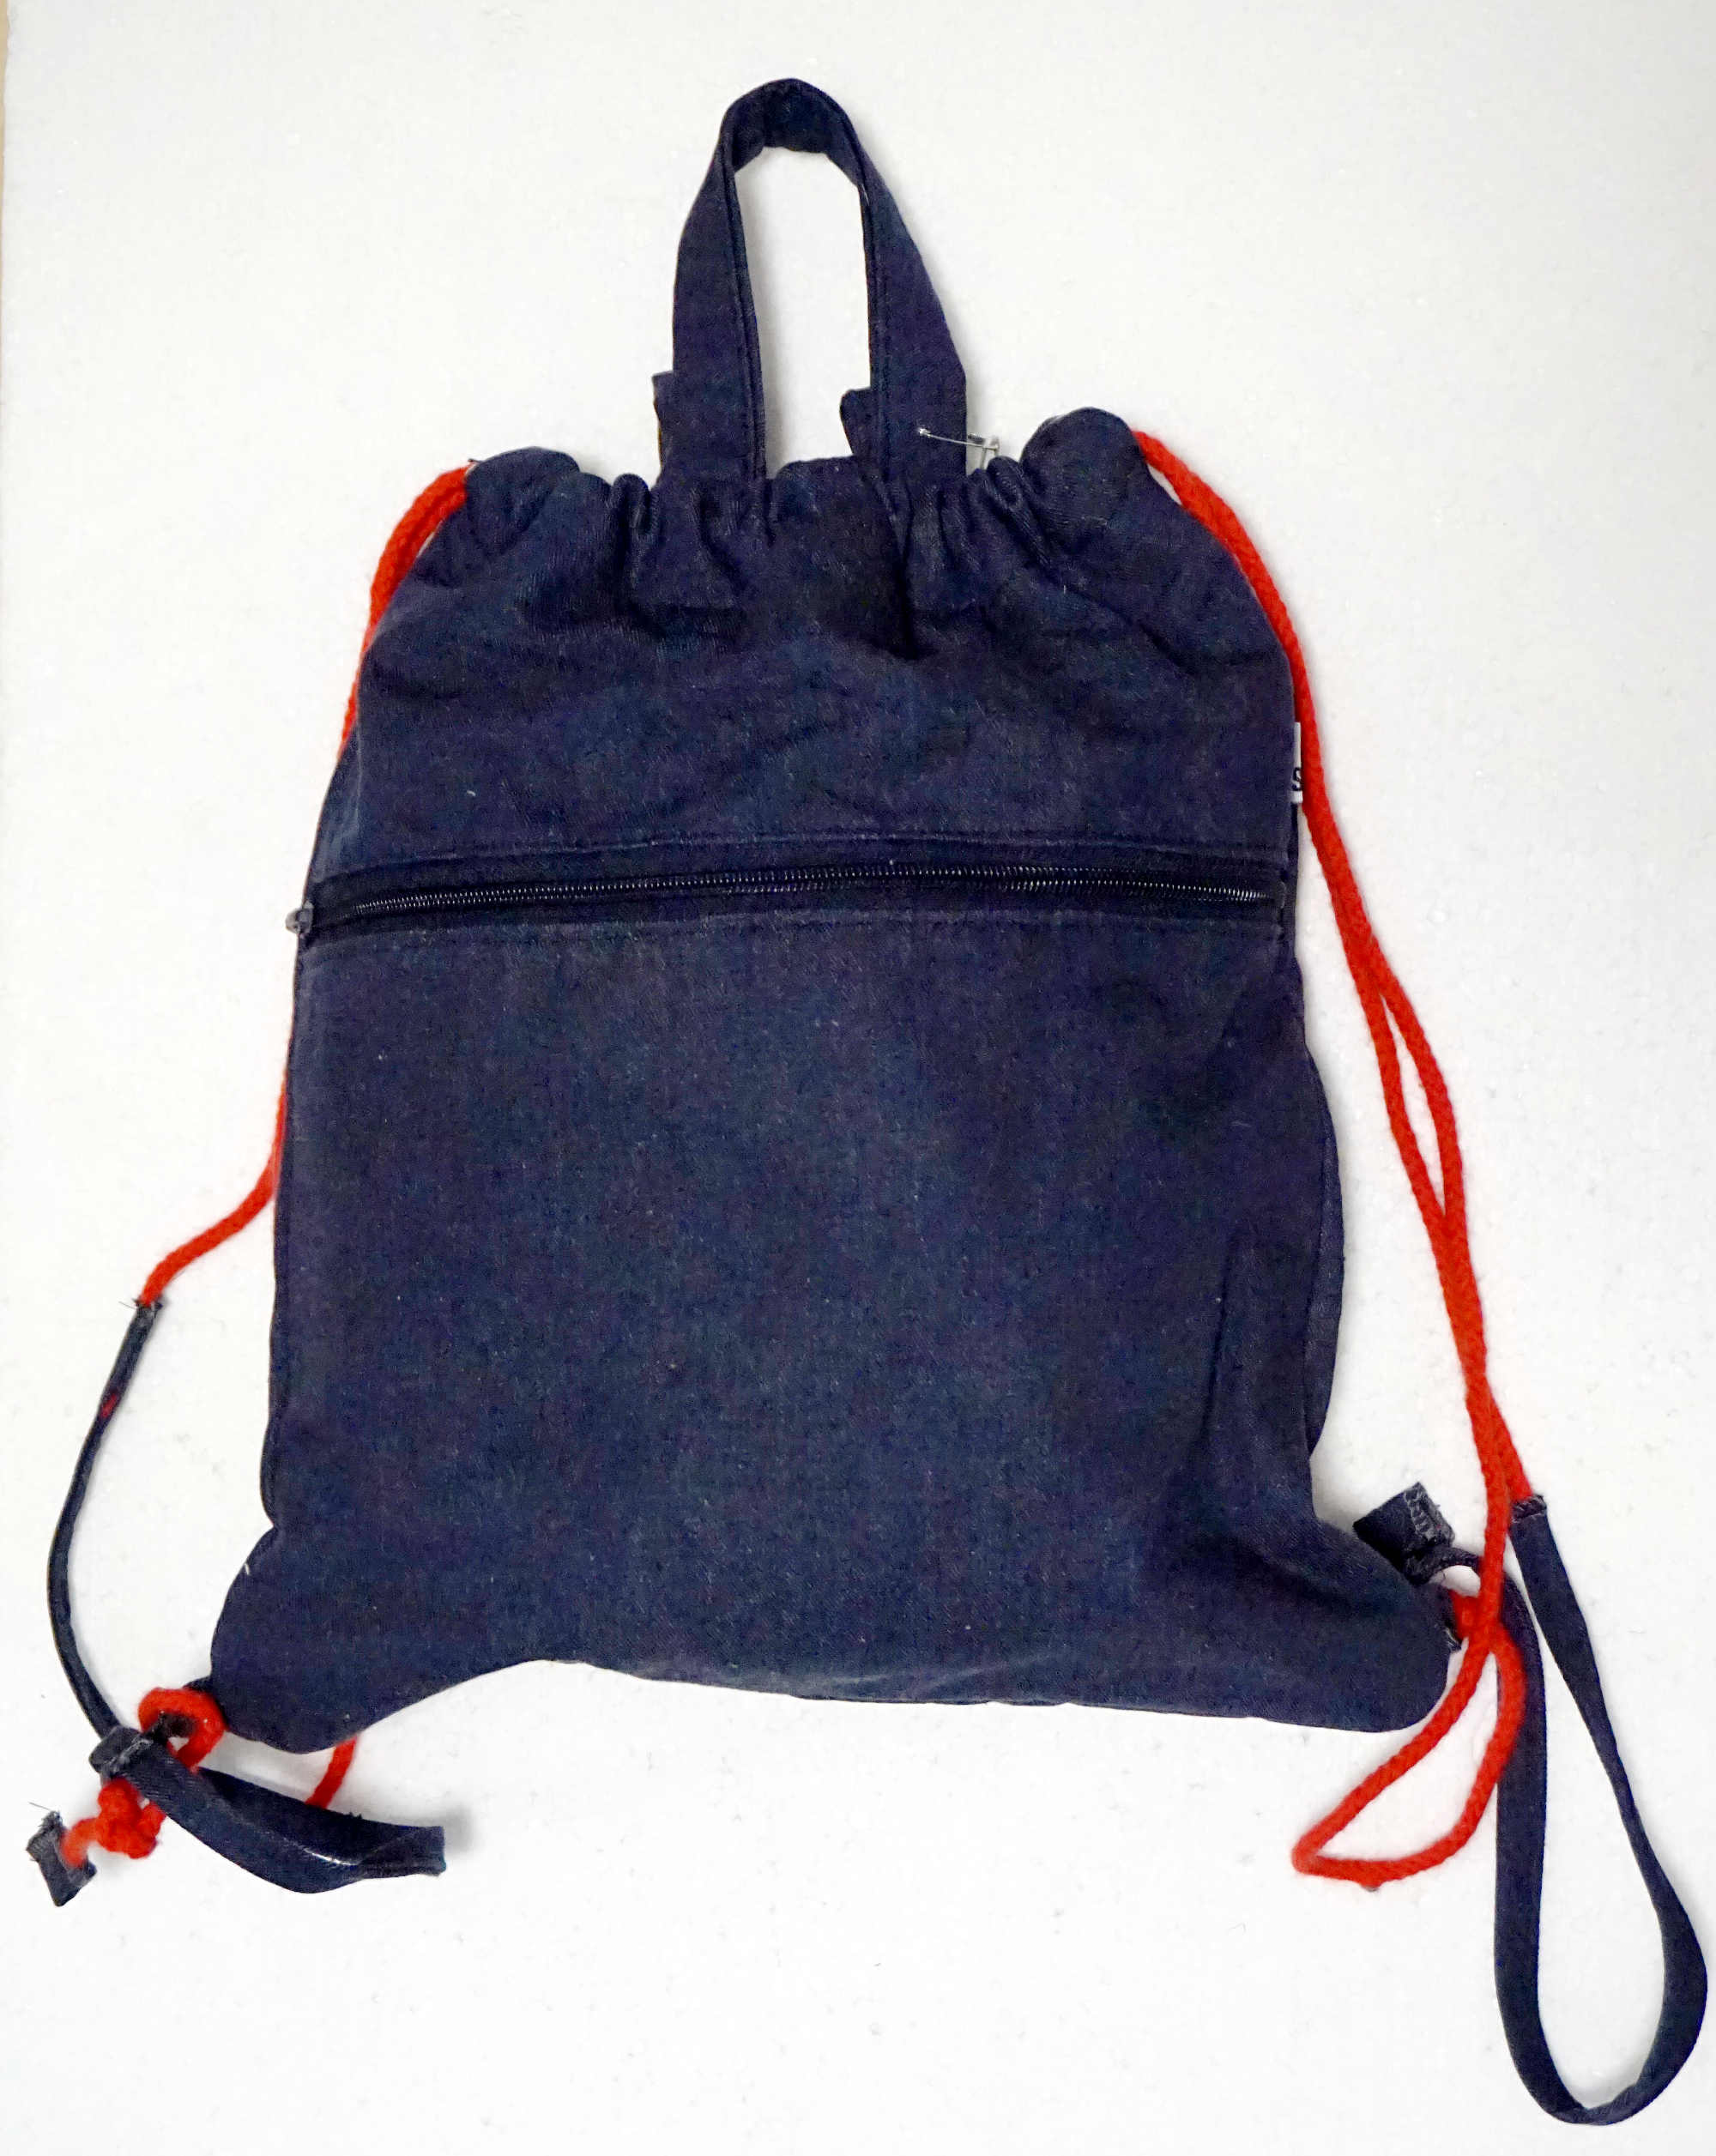 zaino-borsa in denim